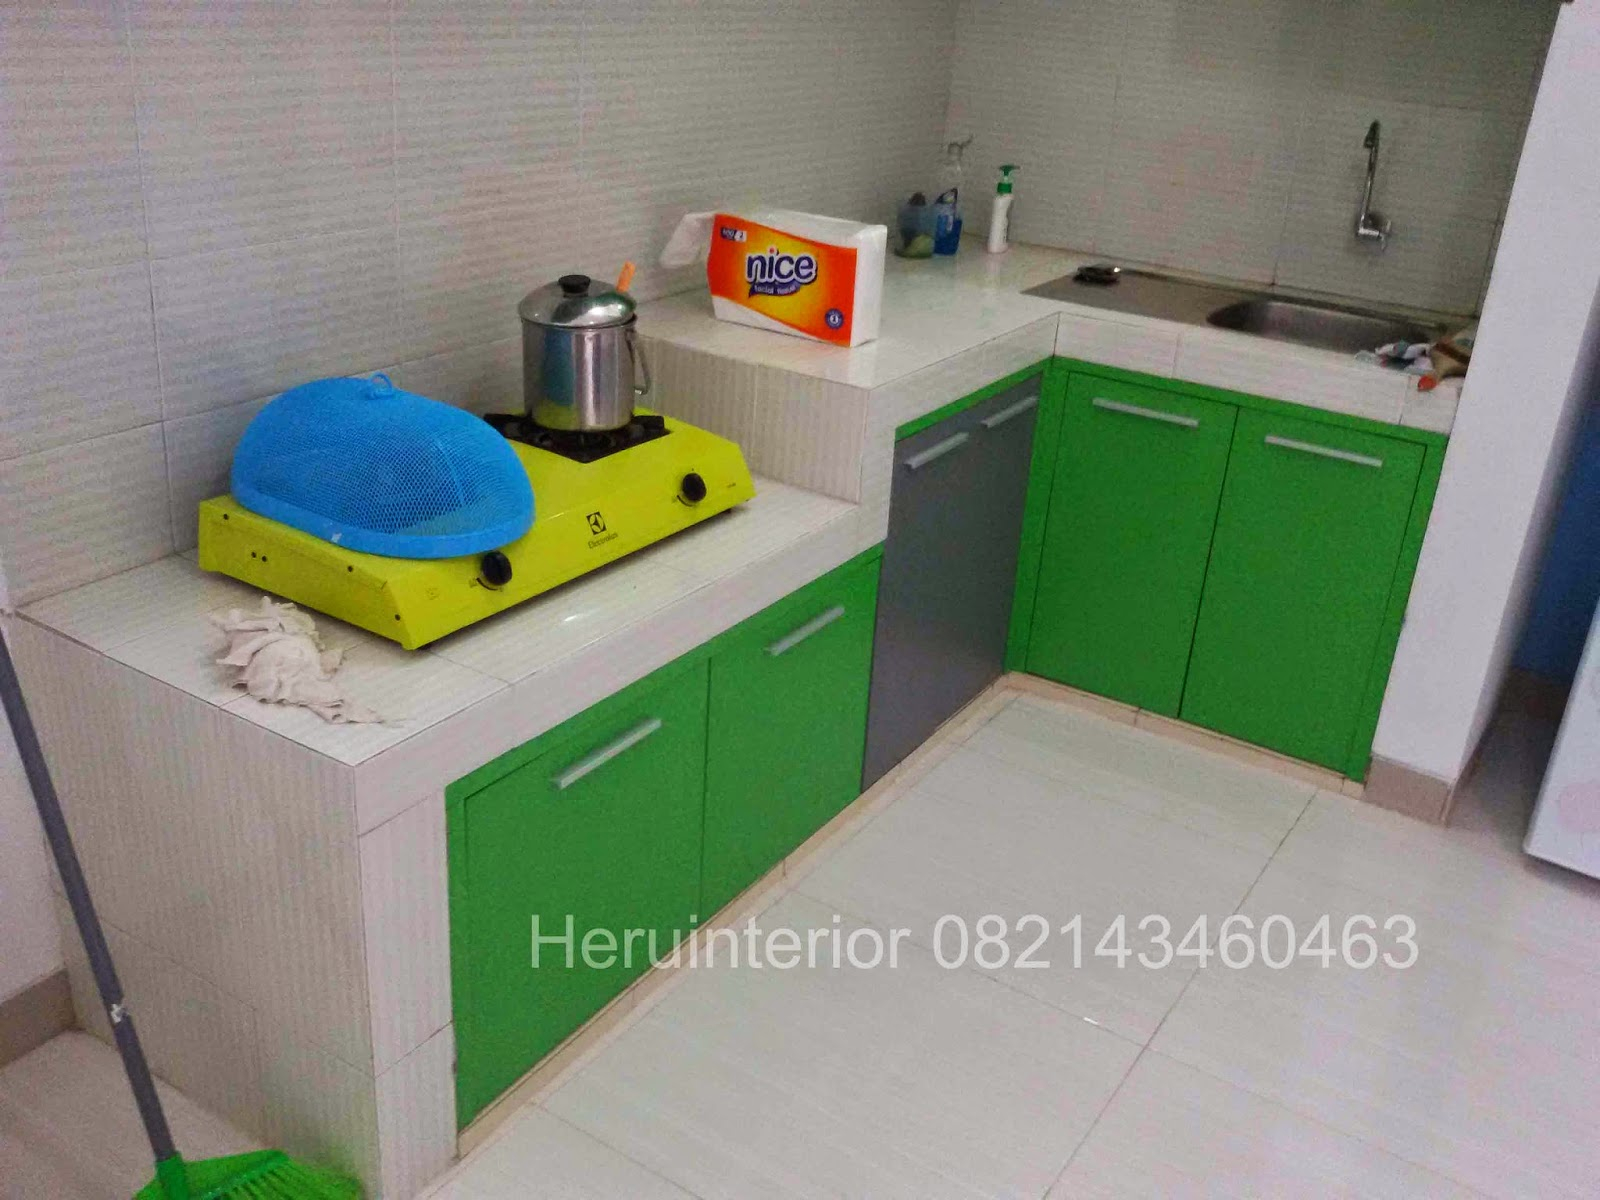 Kontraktor interior surabaya sidoarjo desain kitchen set for Kitchen set hijau